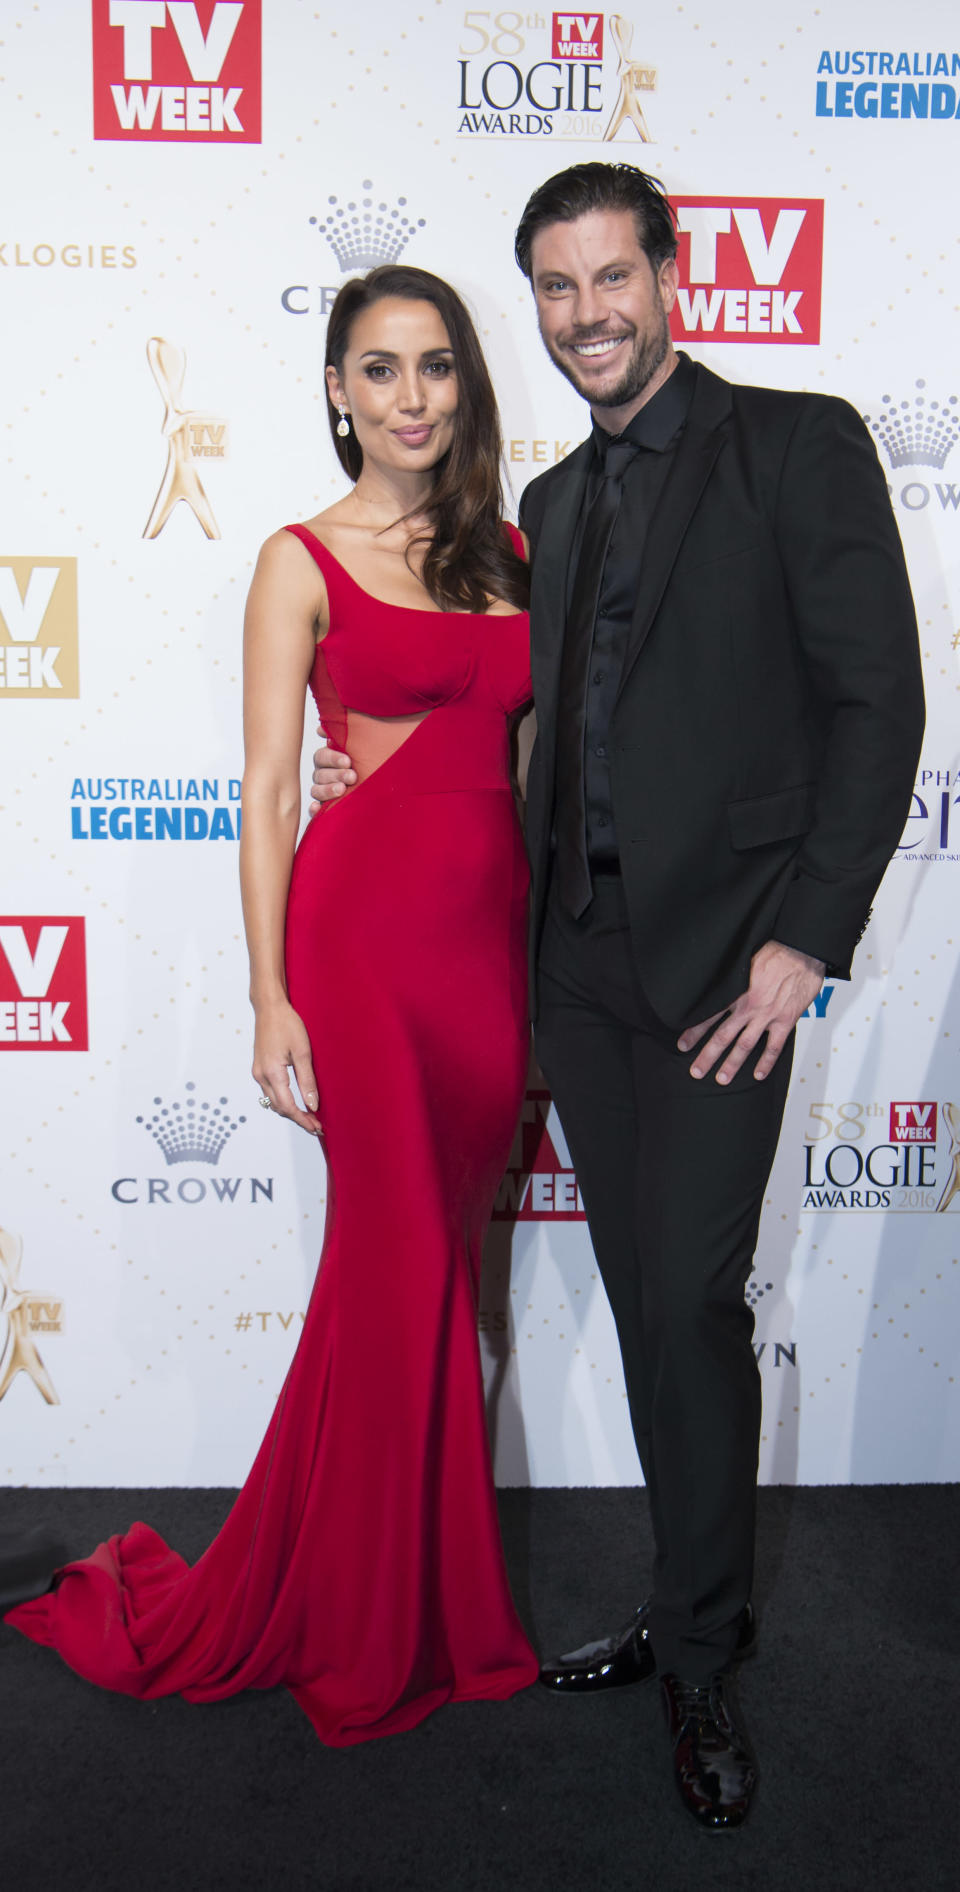 The Bachelor Australia's Snezana Markoski and Sam Wood are just weeks away from getting married. Photo: Getty